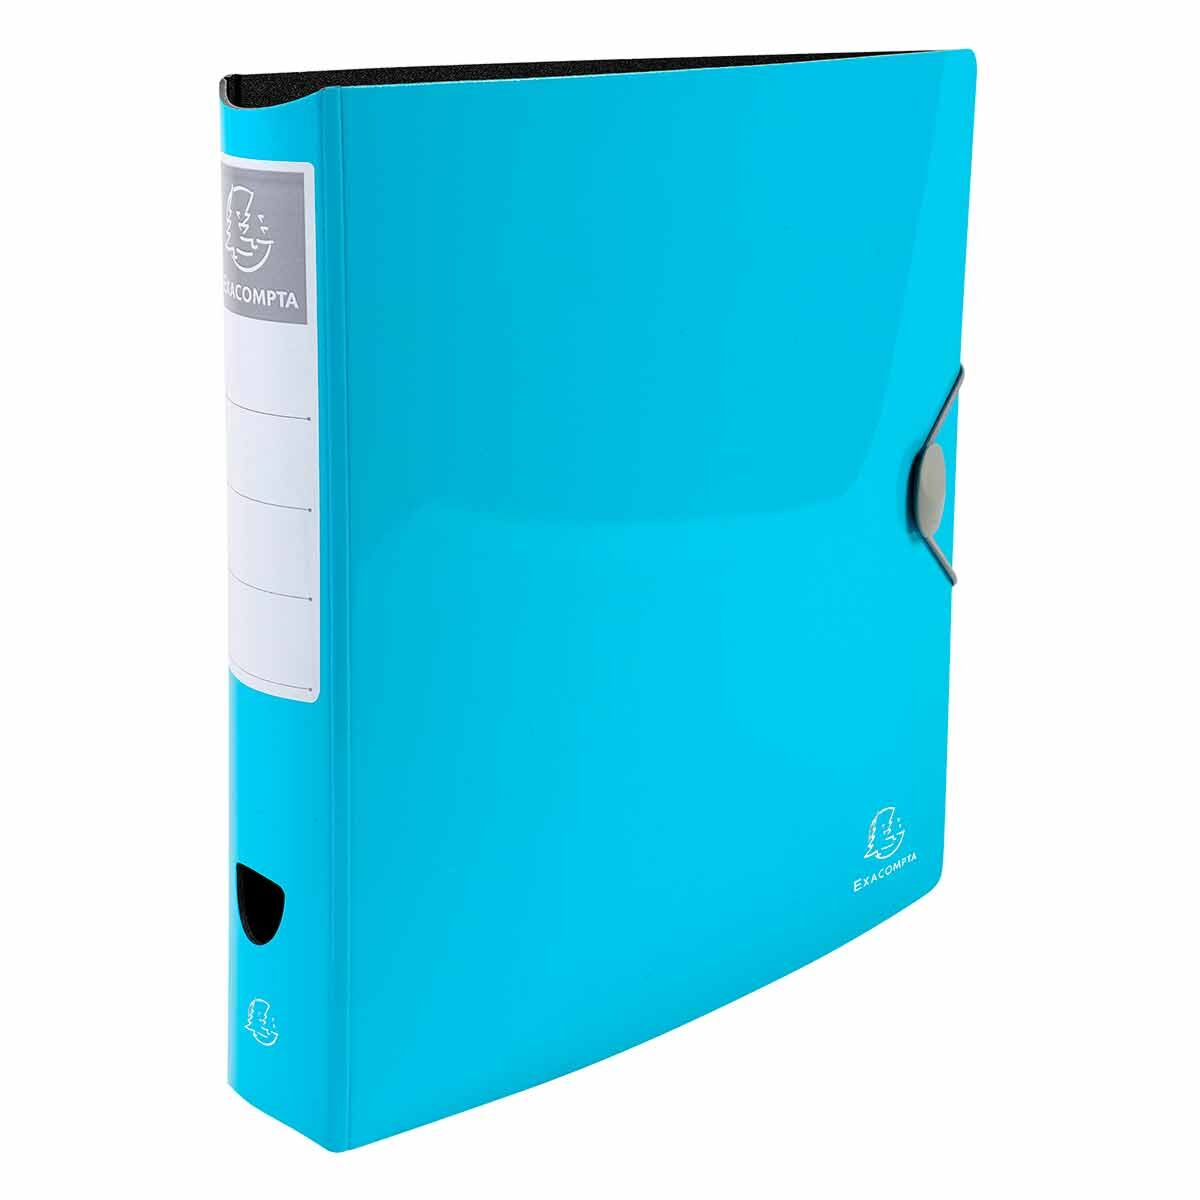 Exacompta Iderama Glossy Lever Arch File A4 PP 75mm Pack of 6 Light Blue